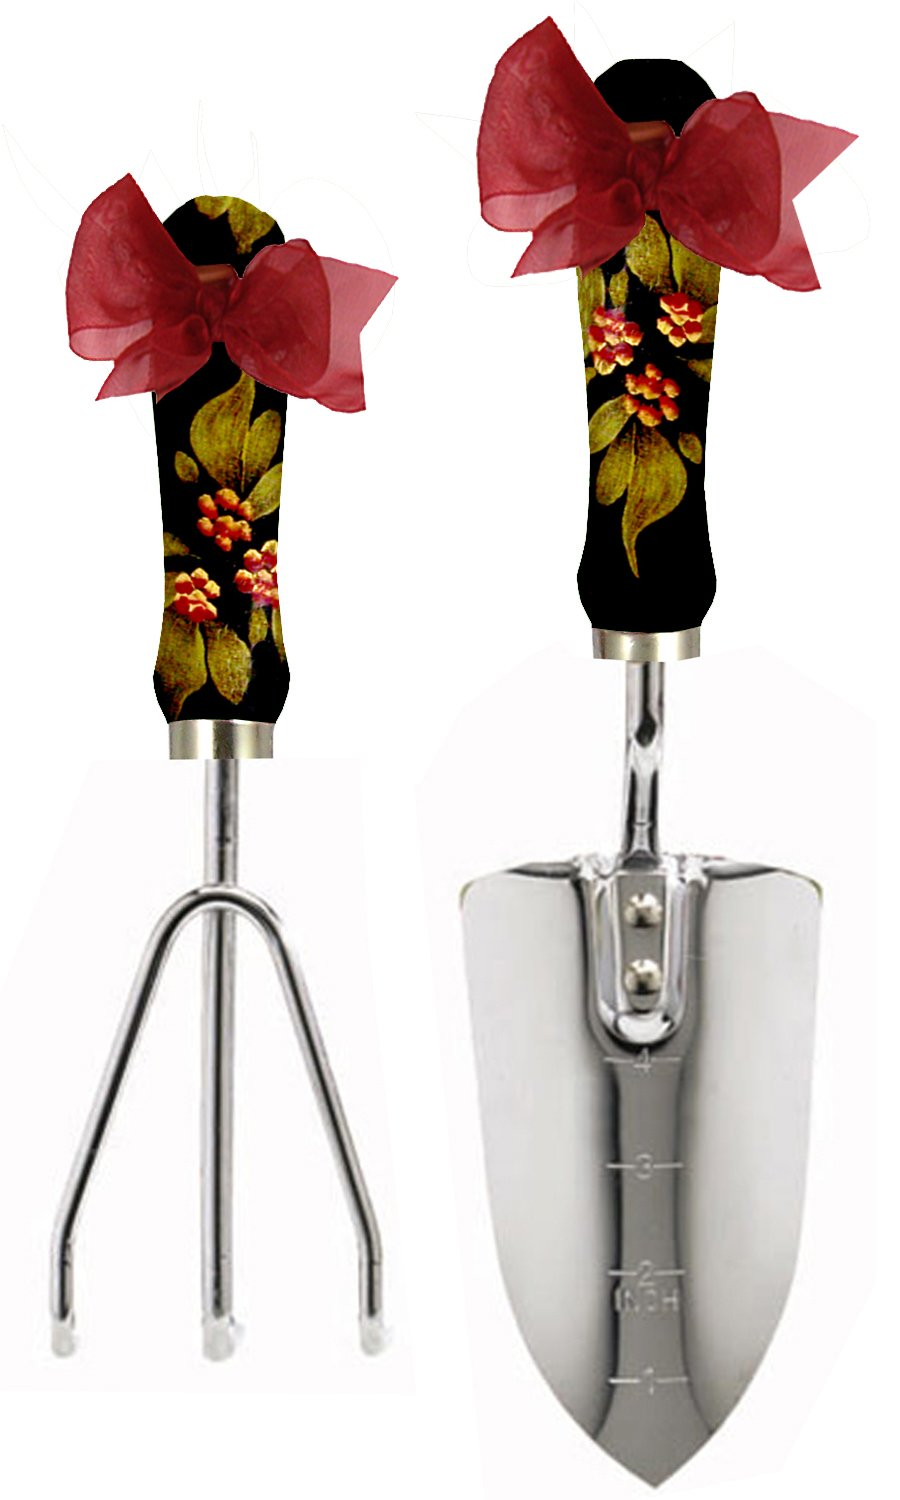 Cute Tools Stainless Steel Garden Shovel and Three Prong Rake - Landscaping Instrument, Hand Painted Wooden Handle In The USA, Durable Yard and Gardening Equipment From CuteTools! - Art For A Cause, Raspberry